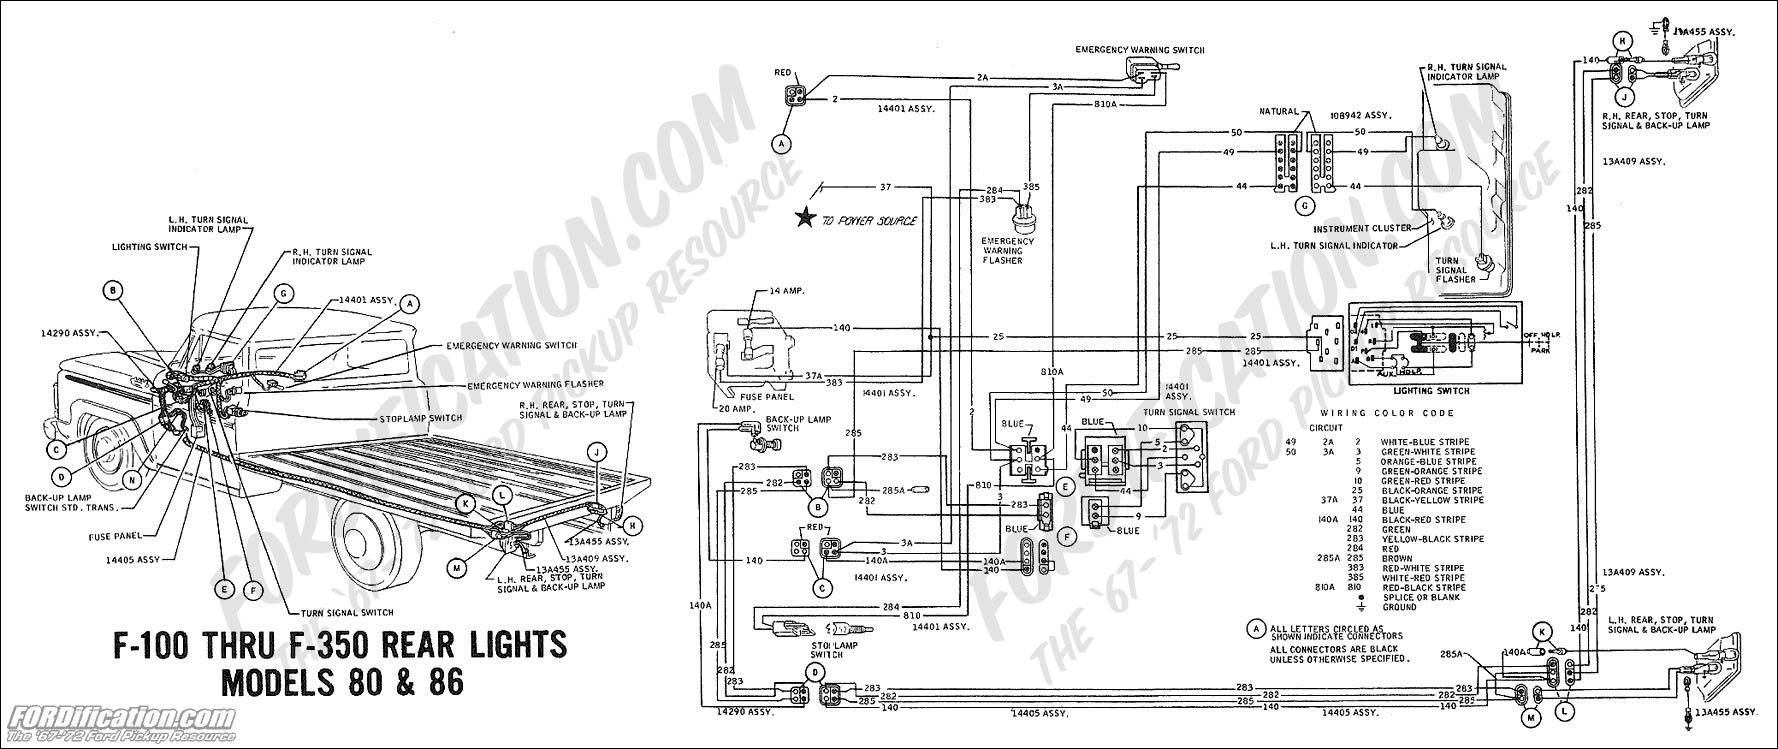 Tail Light Wiring Diagram For 95 Ford F 250 - Wiring Diagram •